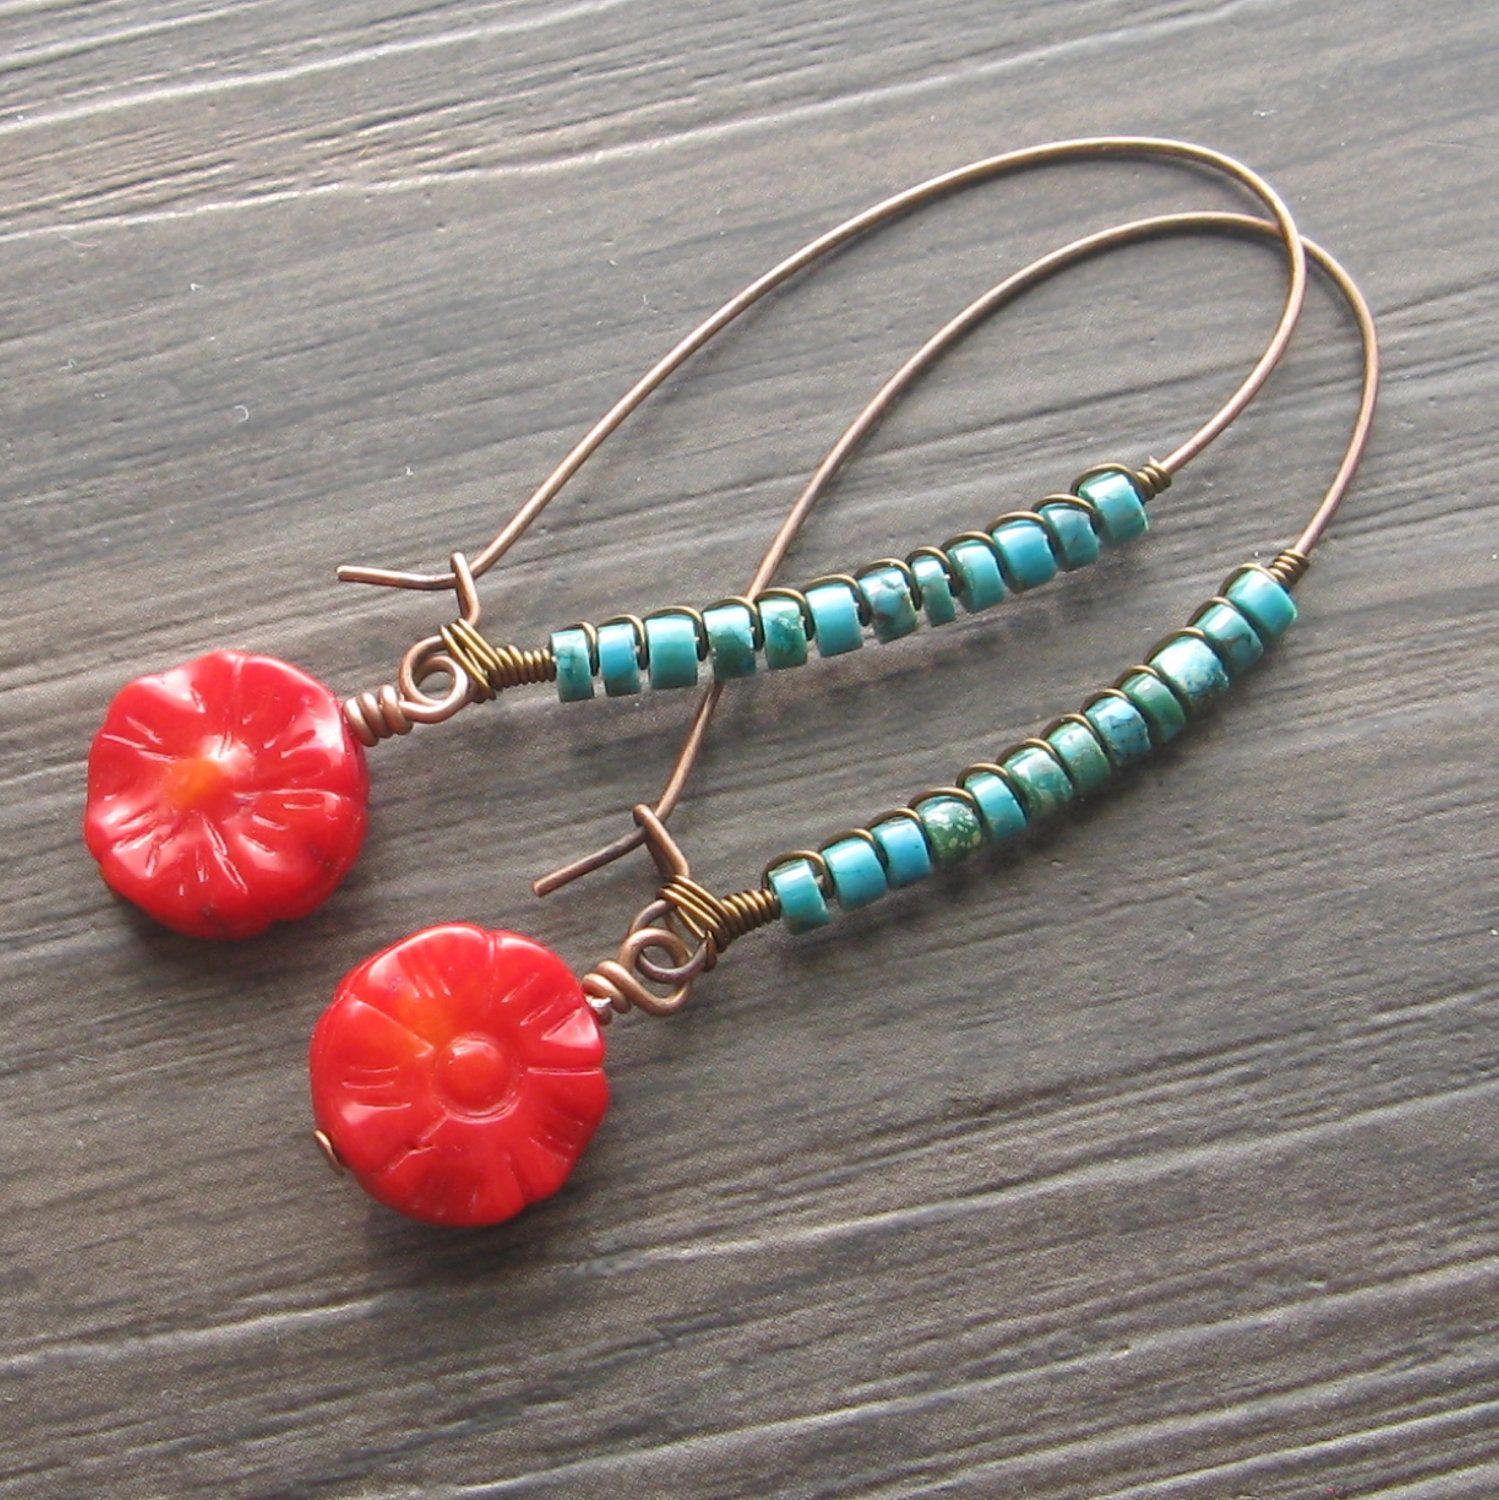 000e64bbe Turquoise and coral wire wrapped earrings - long kidney wire earrings -  bright turquoise red coral earrings. $28.00, via Etsy.